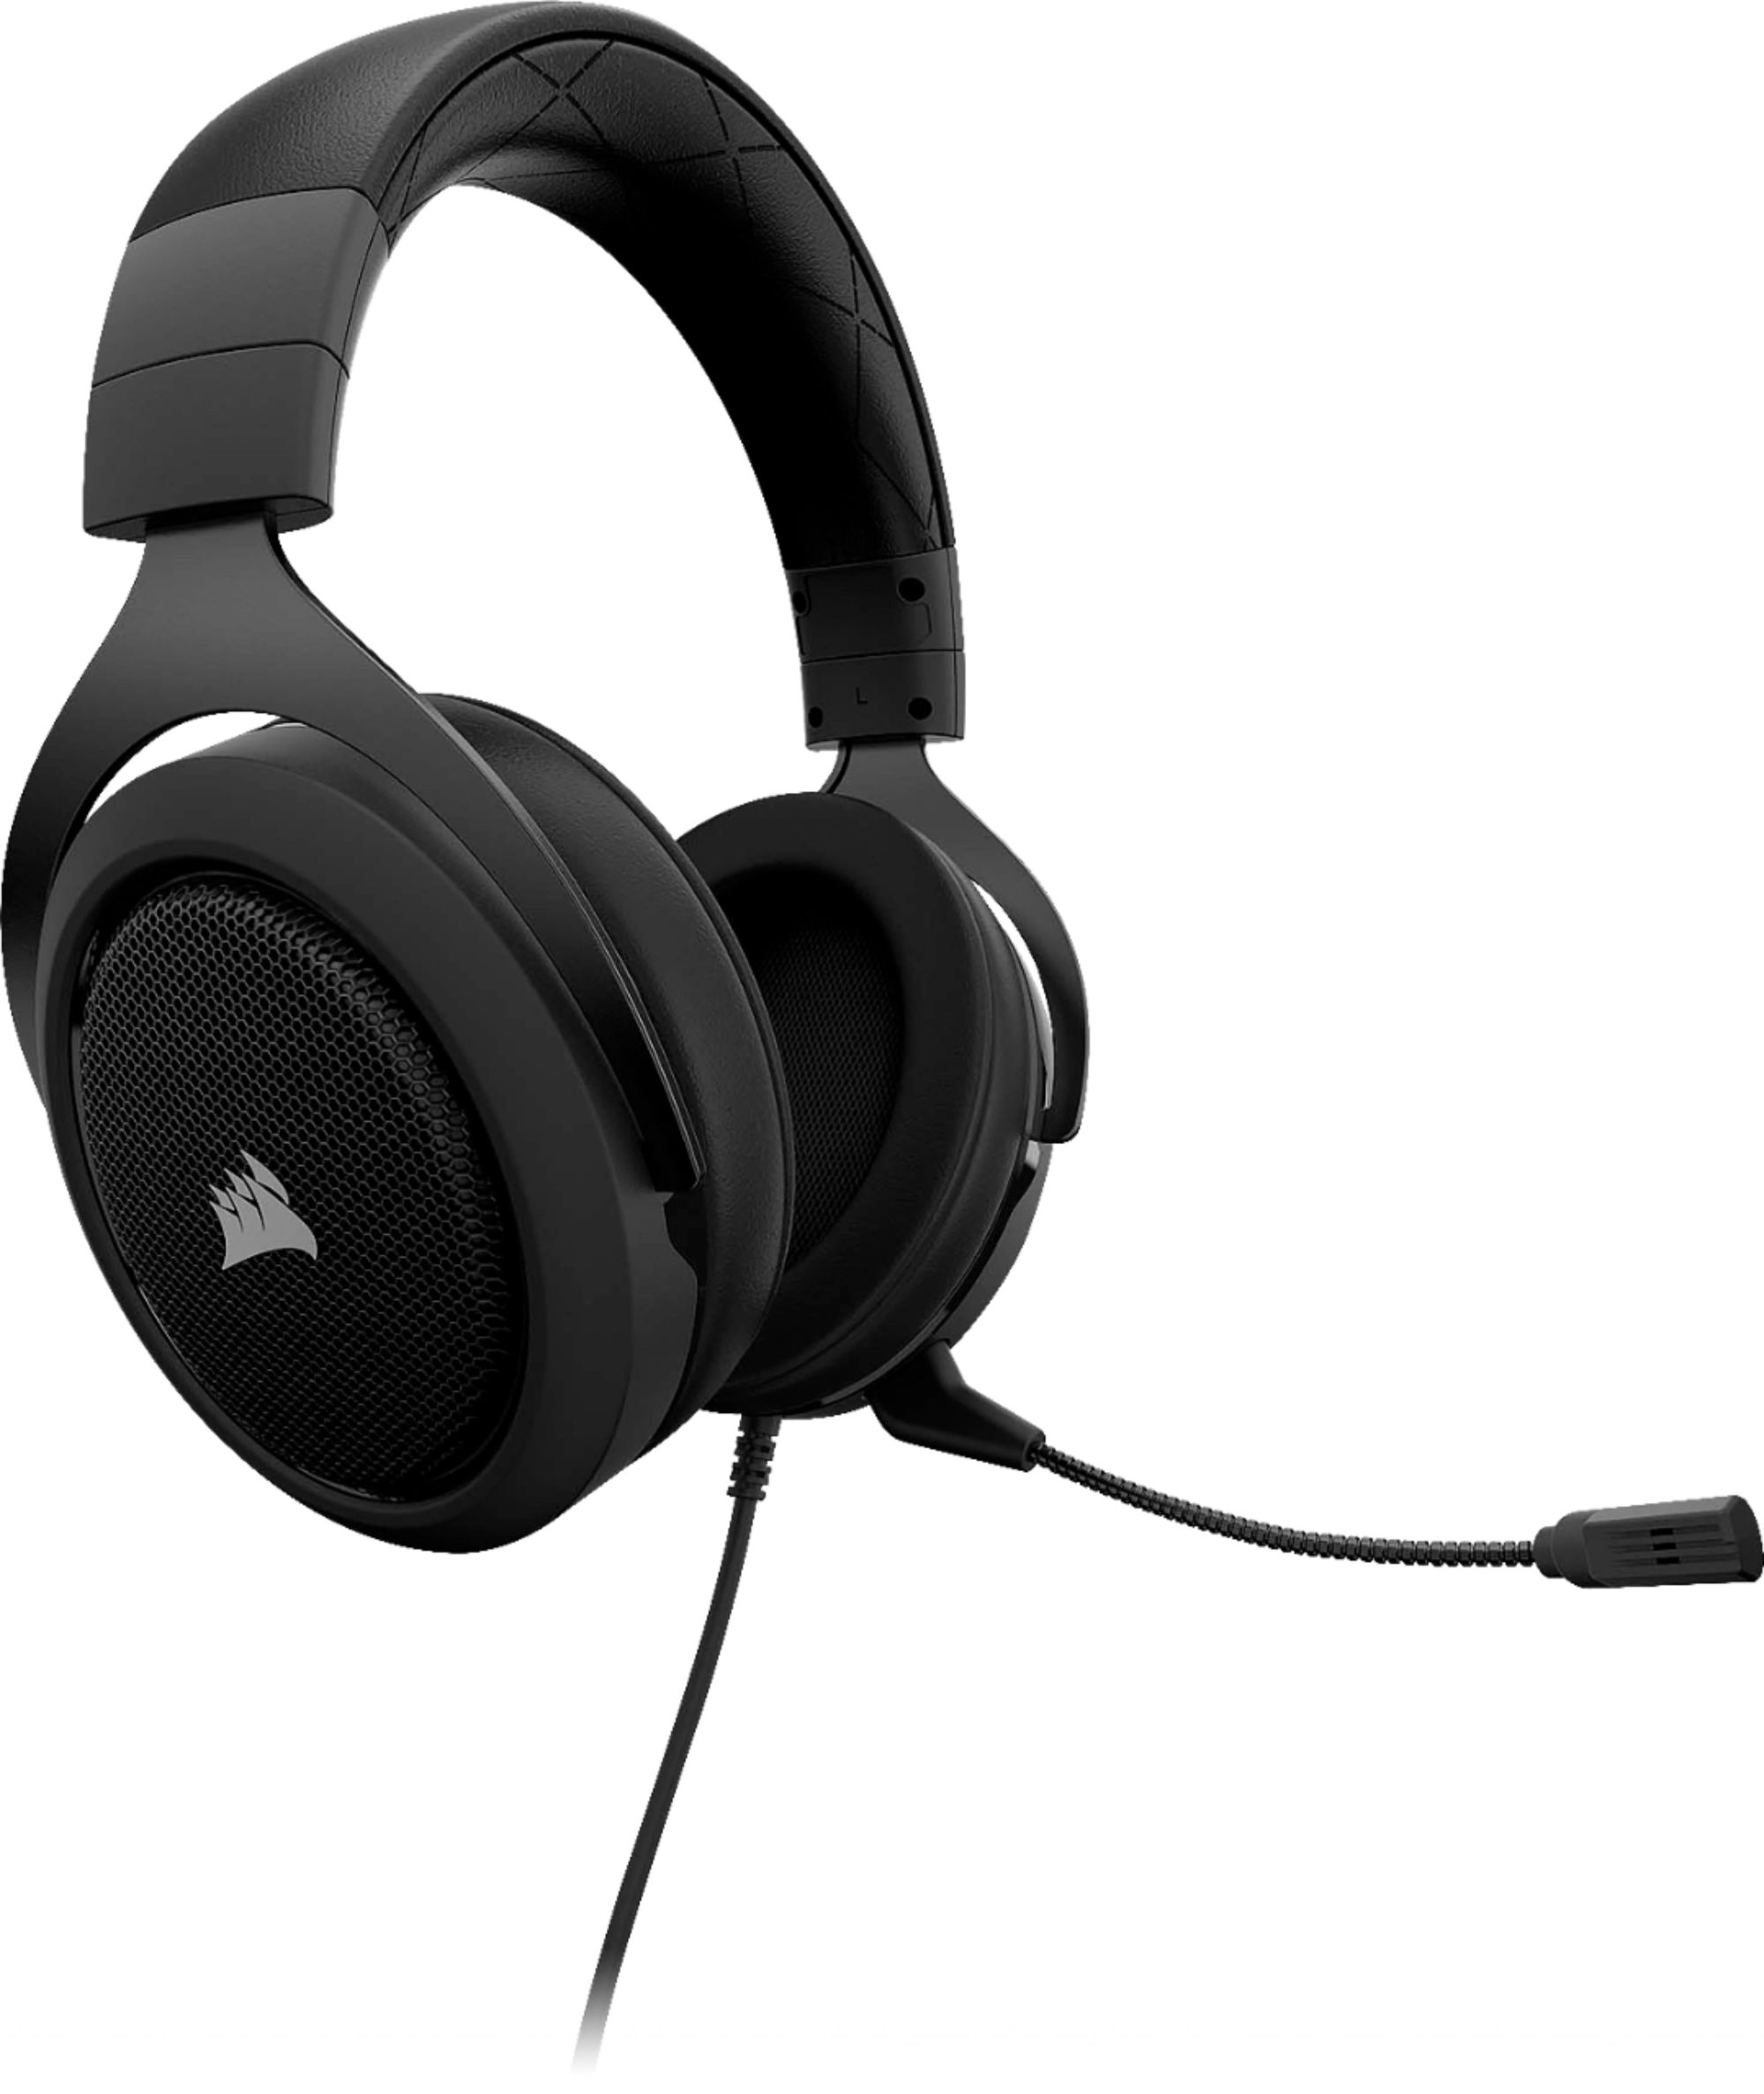 hight resolution of corsair hs60 wired stereo gaming headset for pc xbox one playstation 4 nintendo switch and mobile devices carbon ca 9011173 na best buy